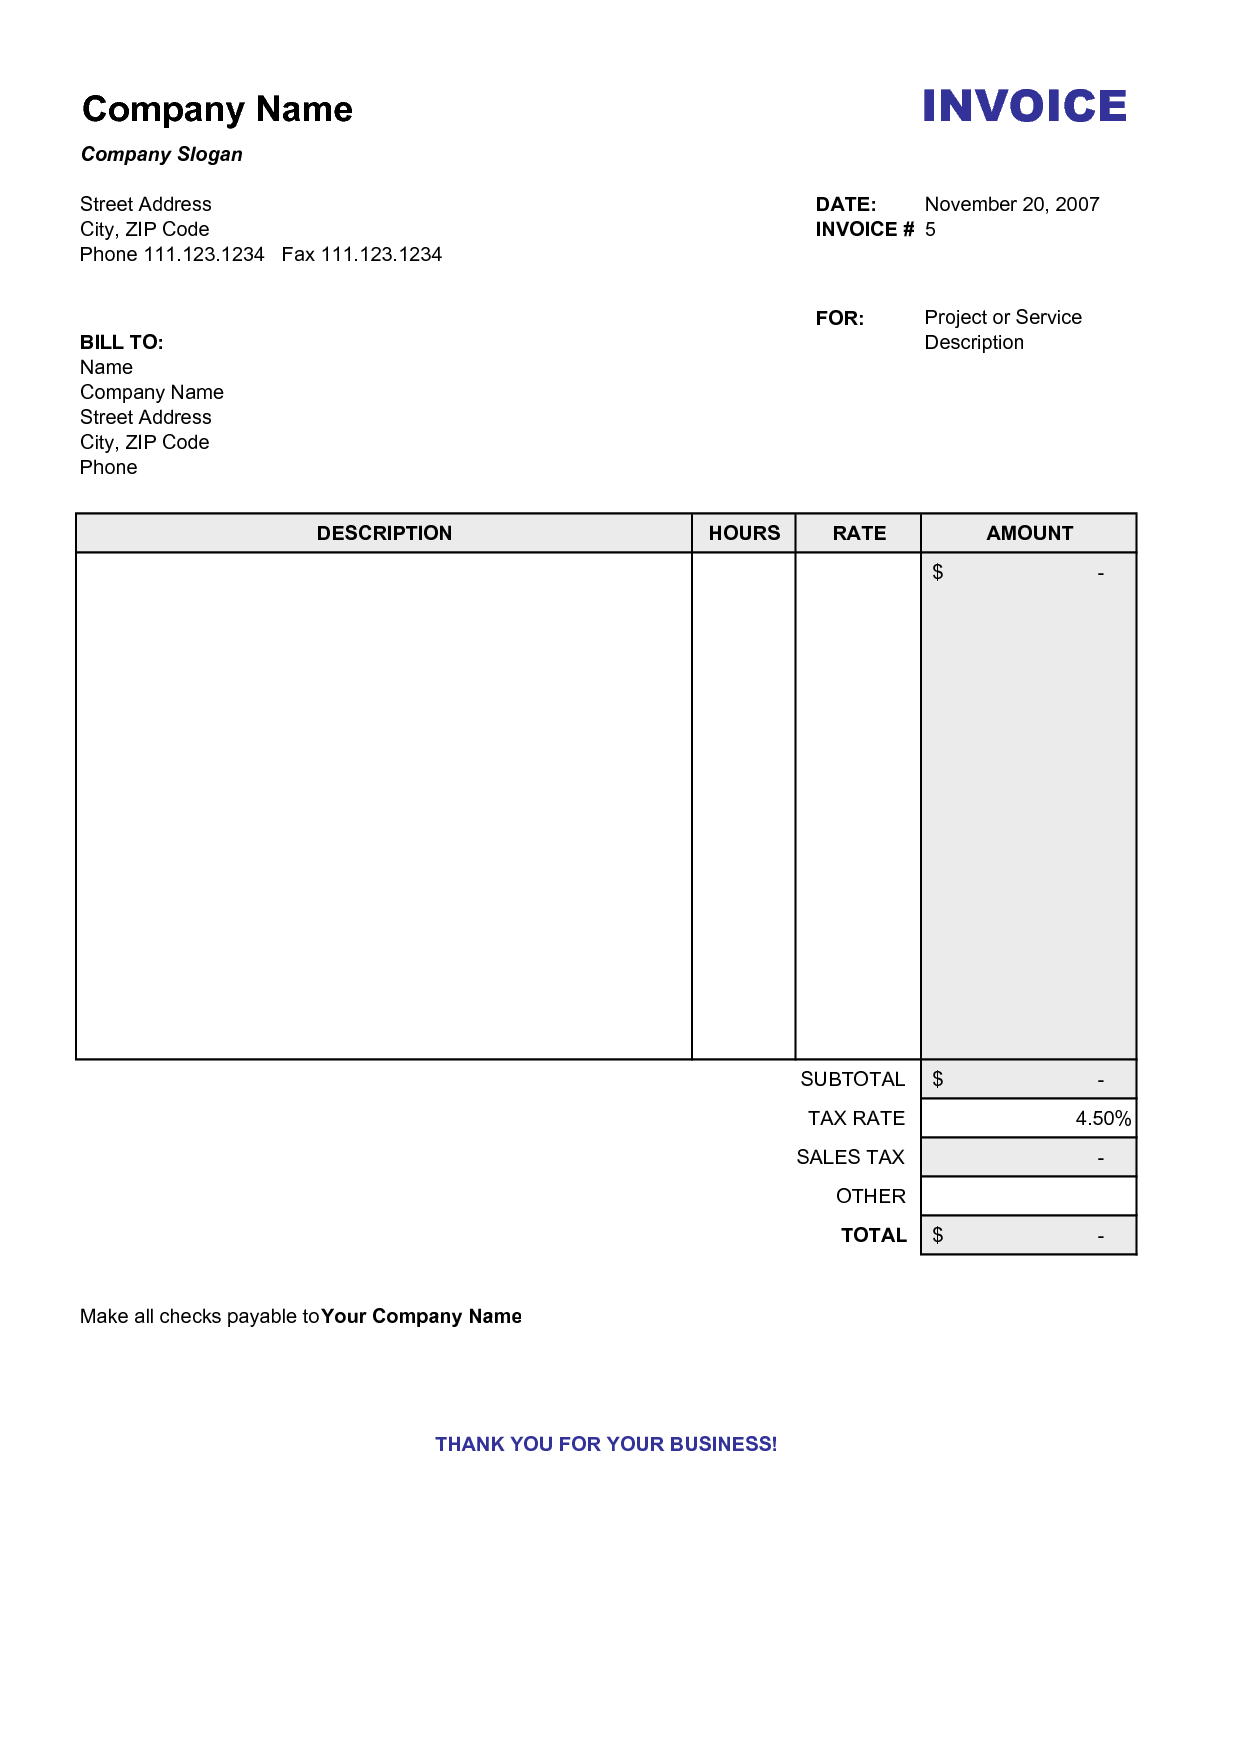 Blank Billing Invoice Scope Of Work Template Organization - What is a proforma invoice for service business